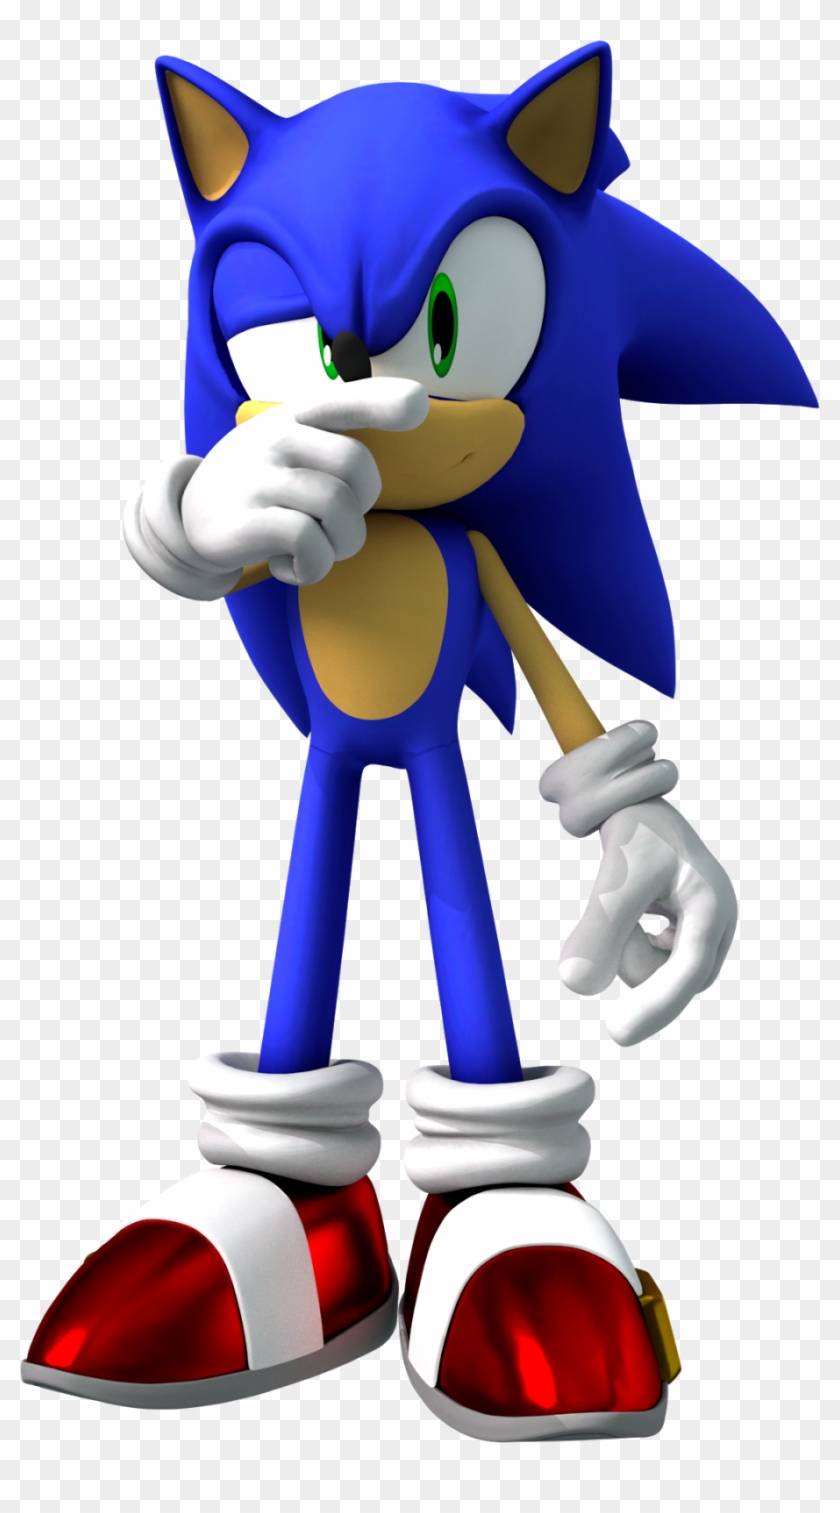 Sonic The Hedgehog Png Photo Sonic The Hedgehog Transparent Png Download 912x1600 323325 Pinpng